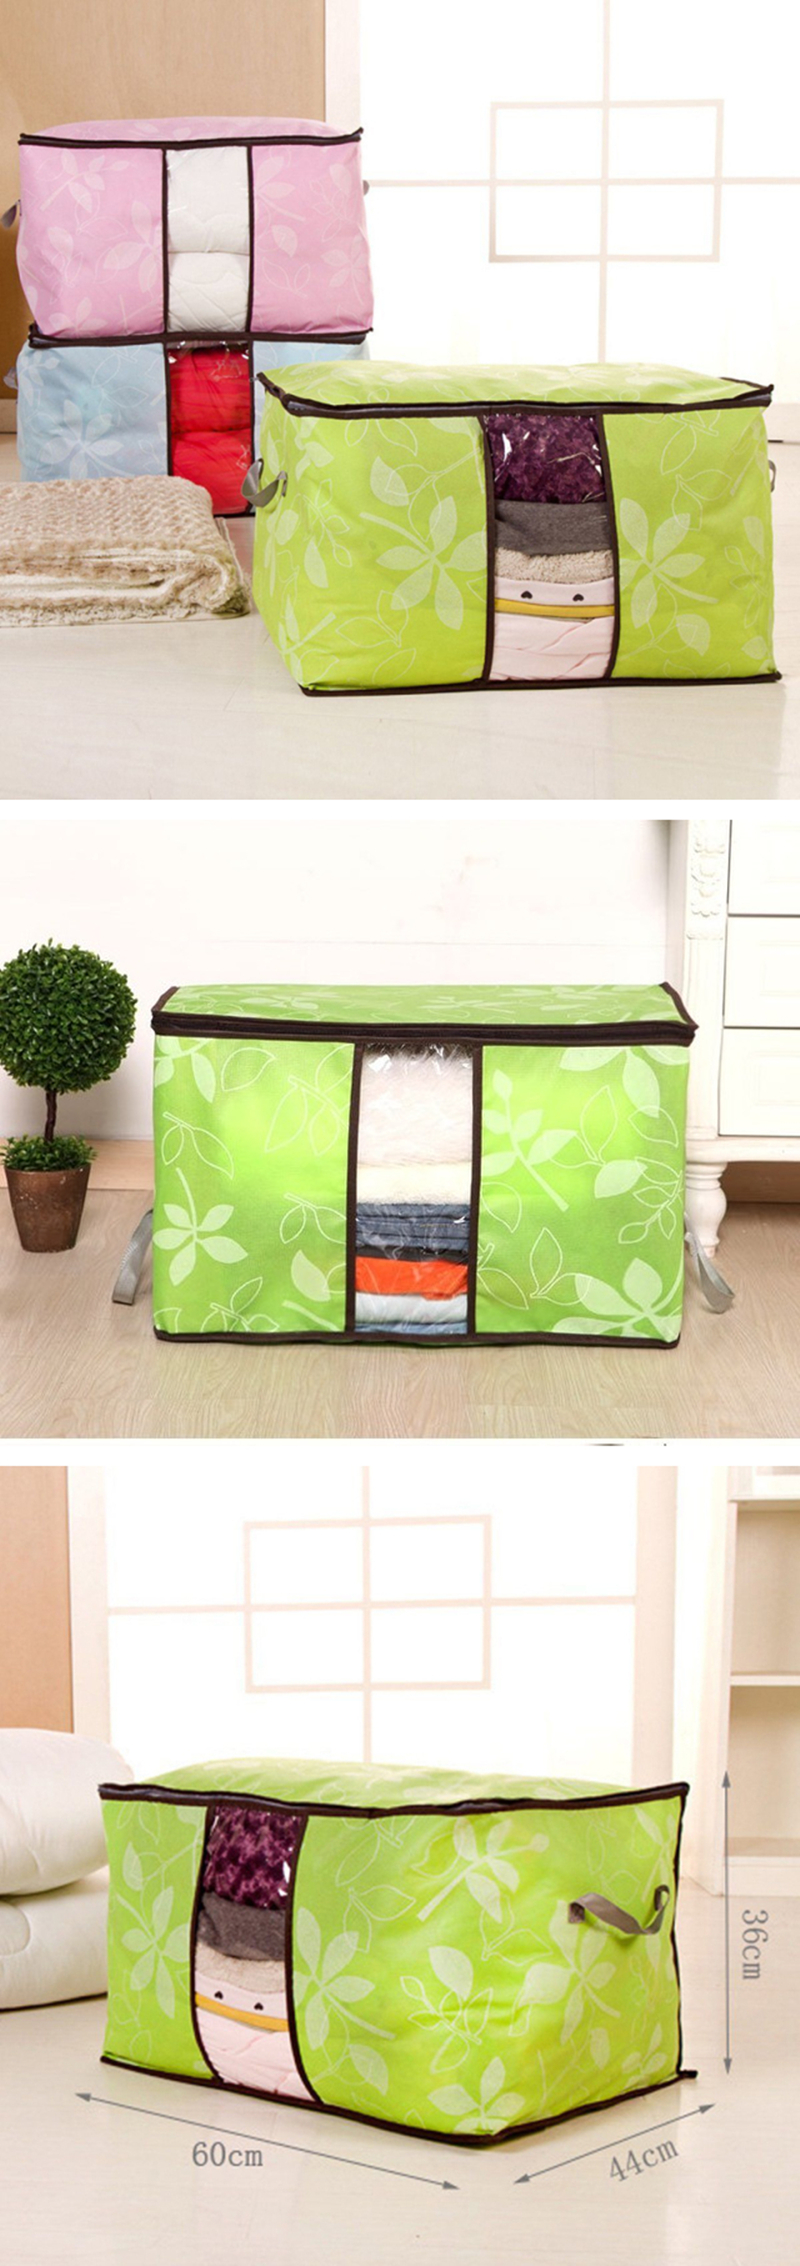 IPRee® 60x44x36cm Bamboo Charcoal Non Woven Quilts Bag Portable Big Size Storage Box with Window